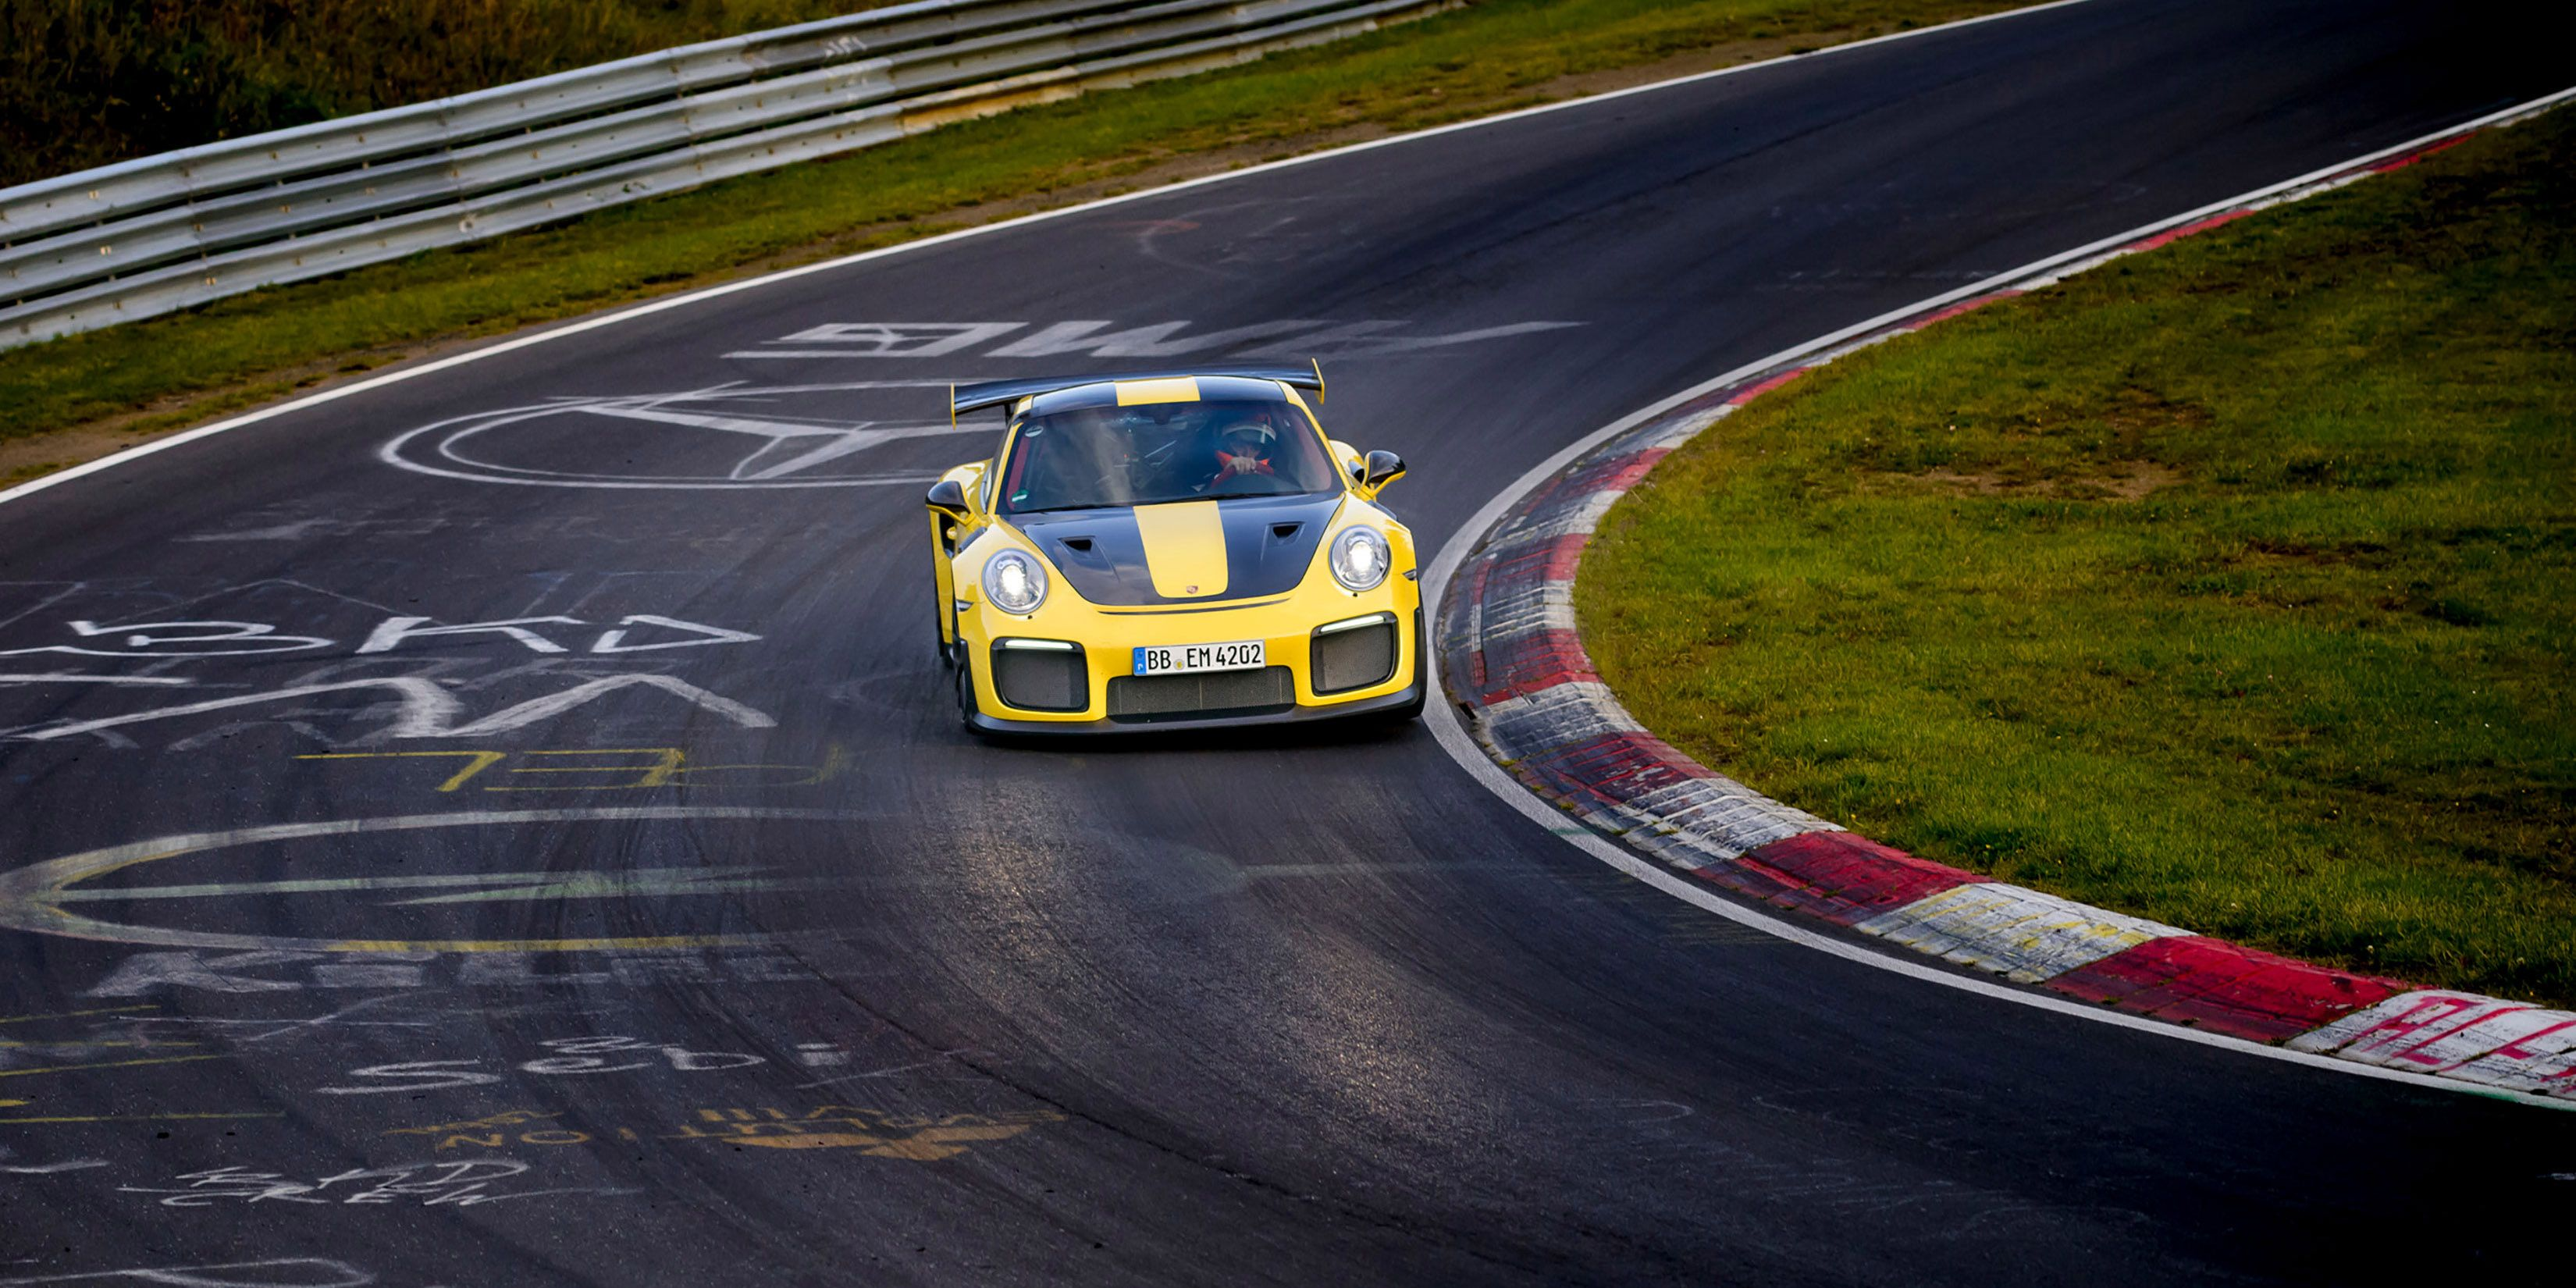 The Porsche 911 GT2 RS Just Obliterated the Lap Record at the Nurburgring